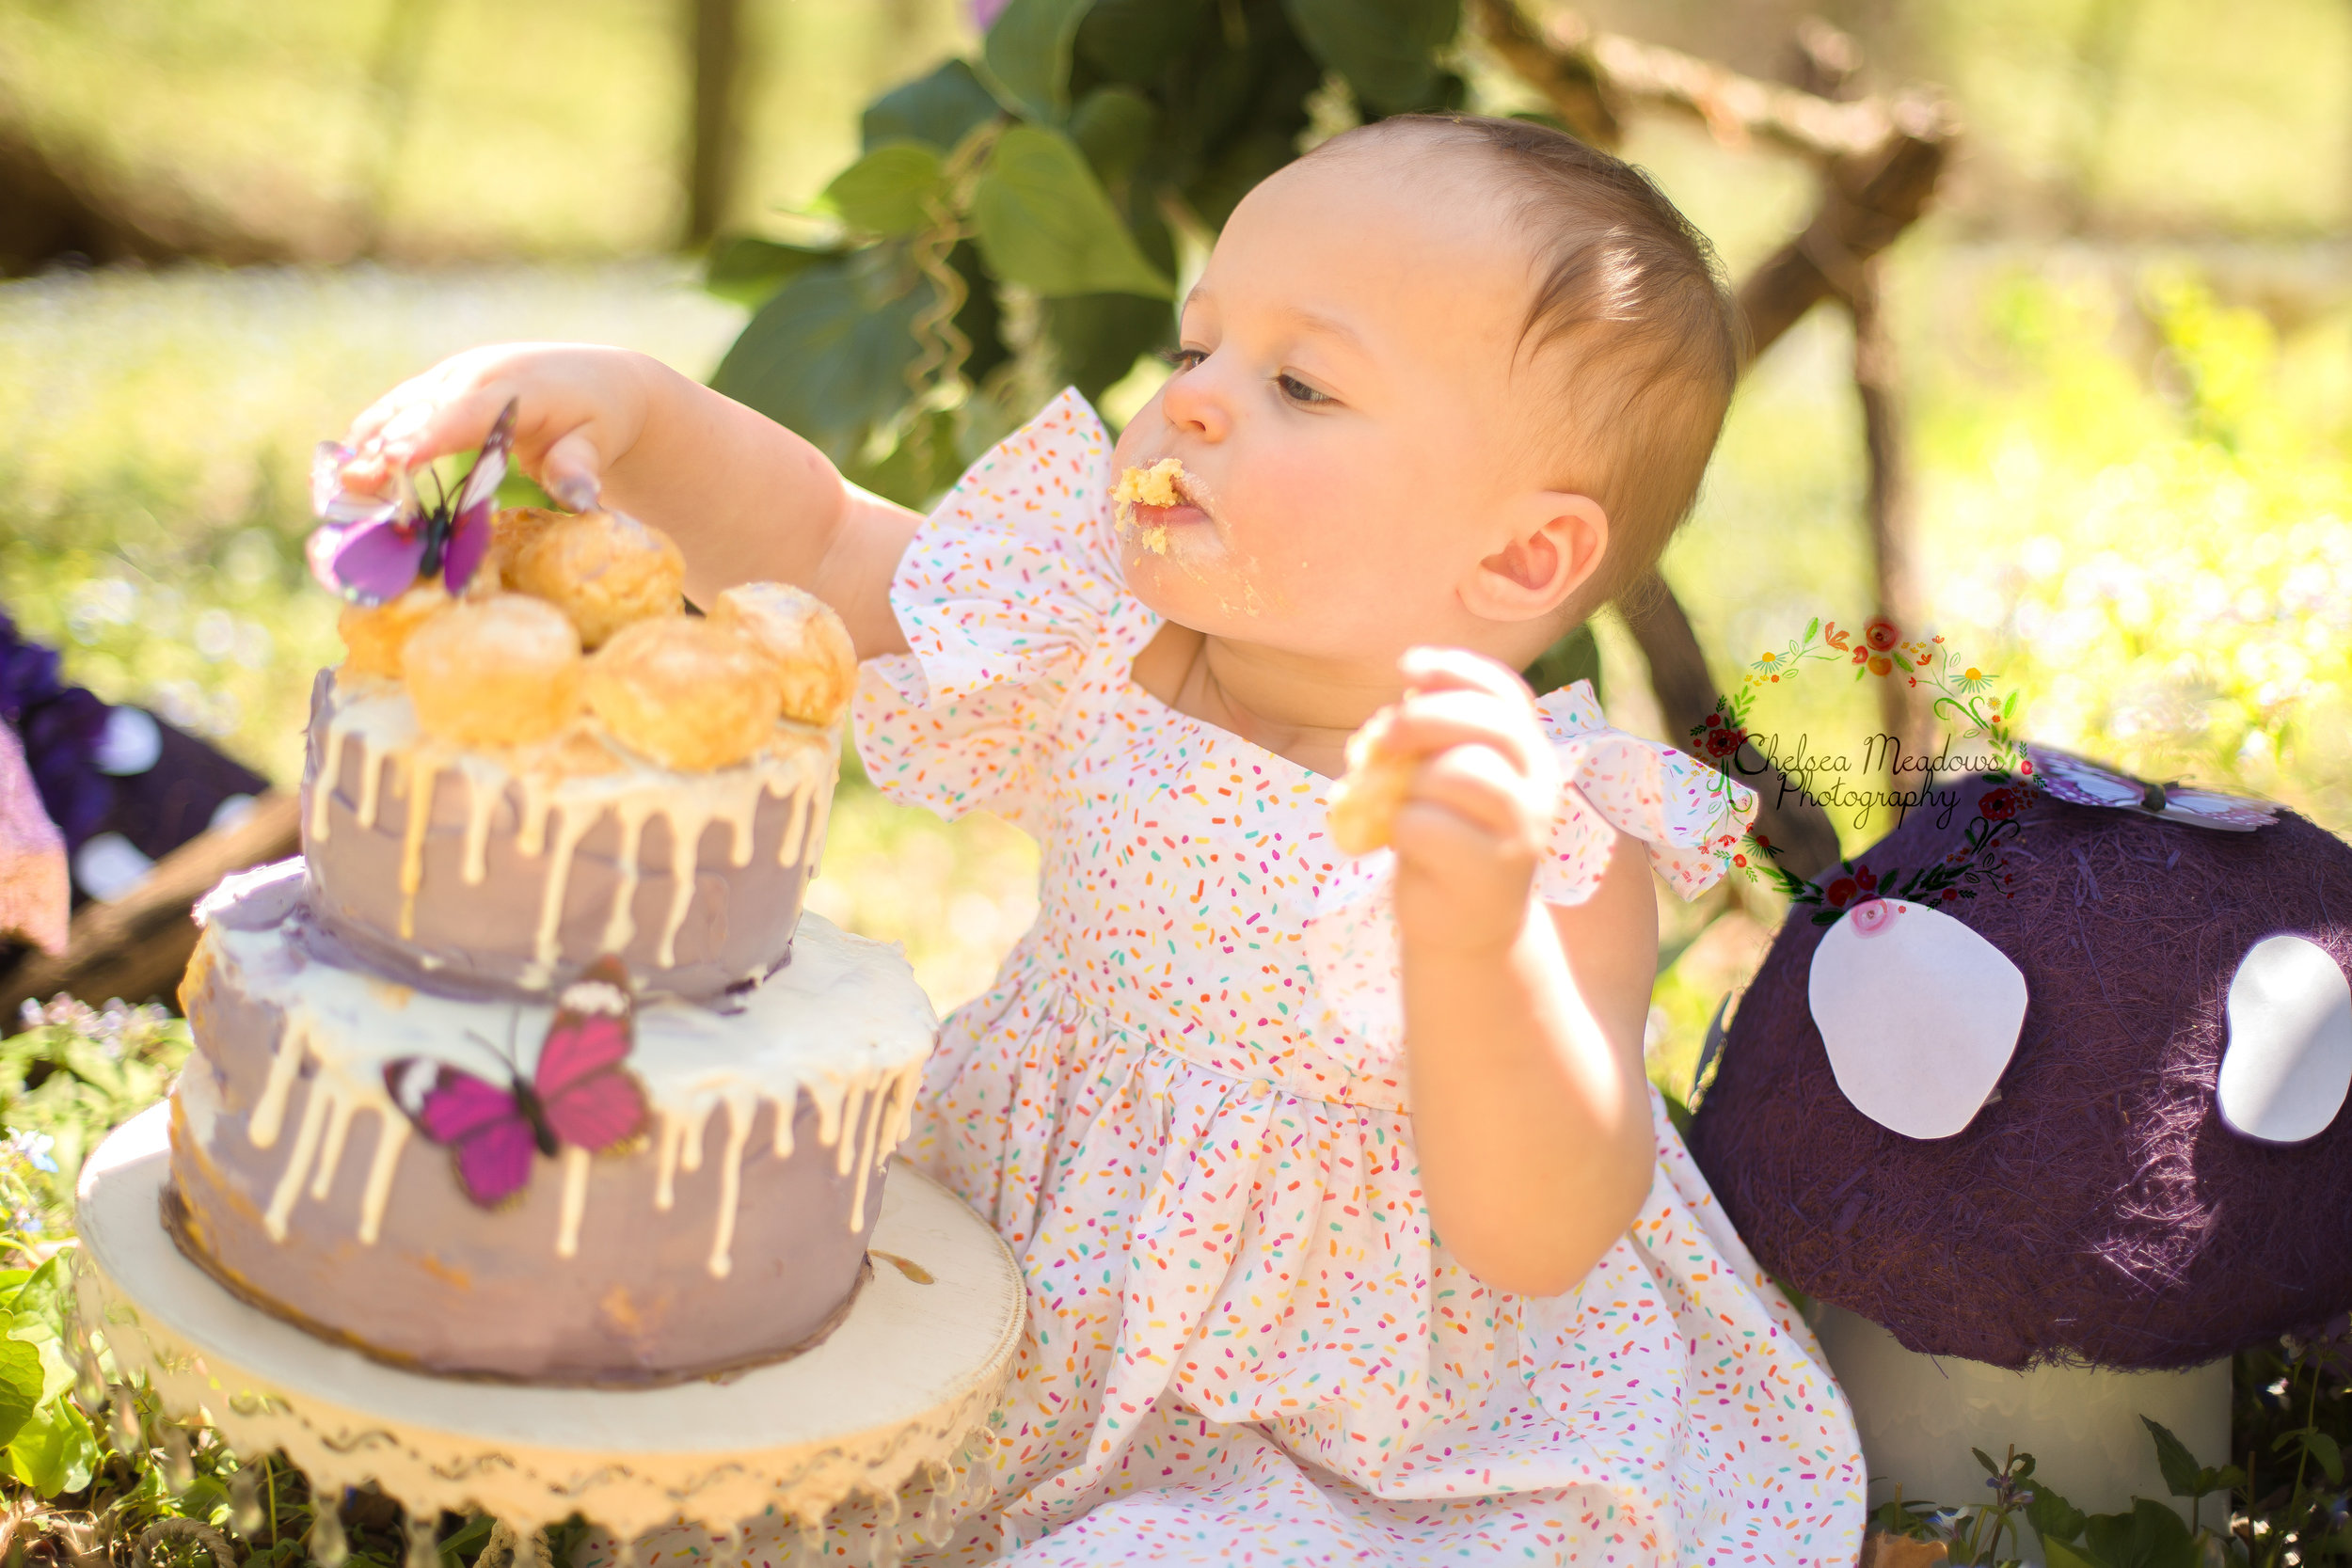 Ivy Cake Smash - Nashville Family Photographer - Chelsea Meadows Photography (60).jpg